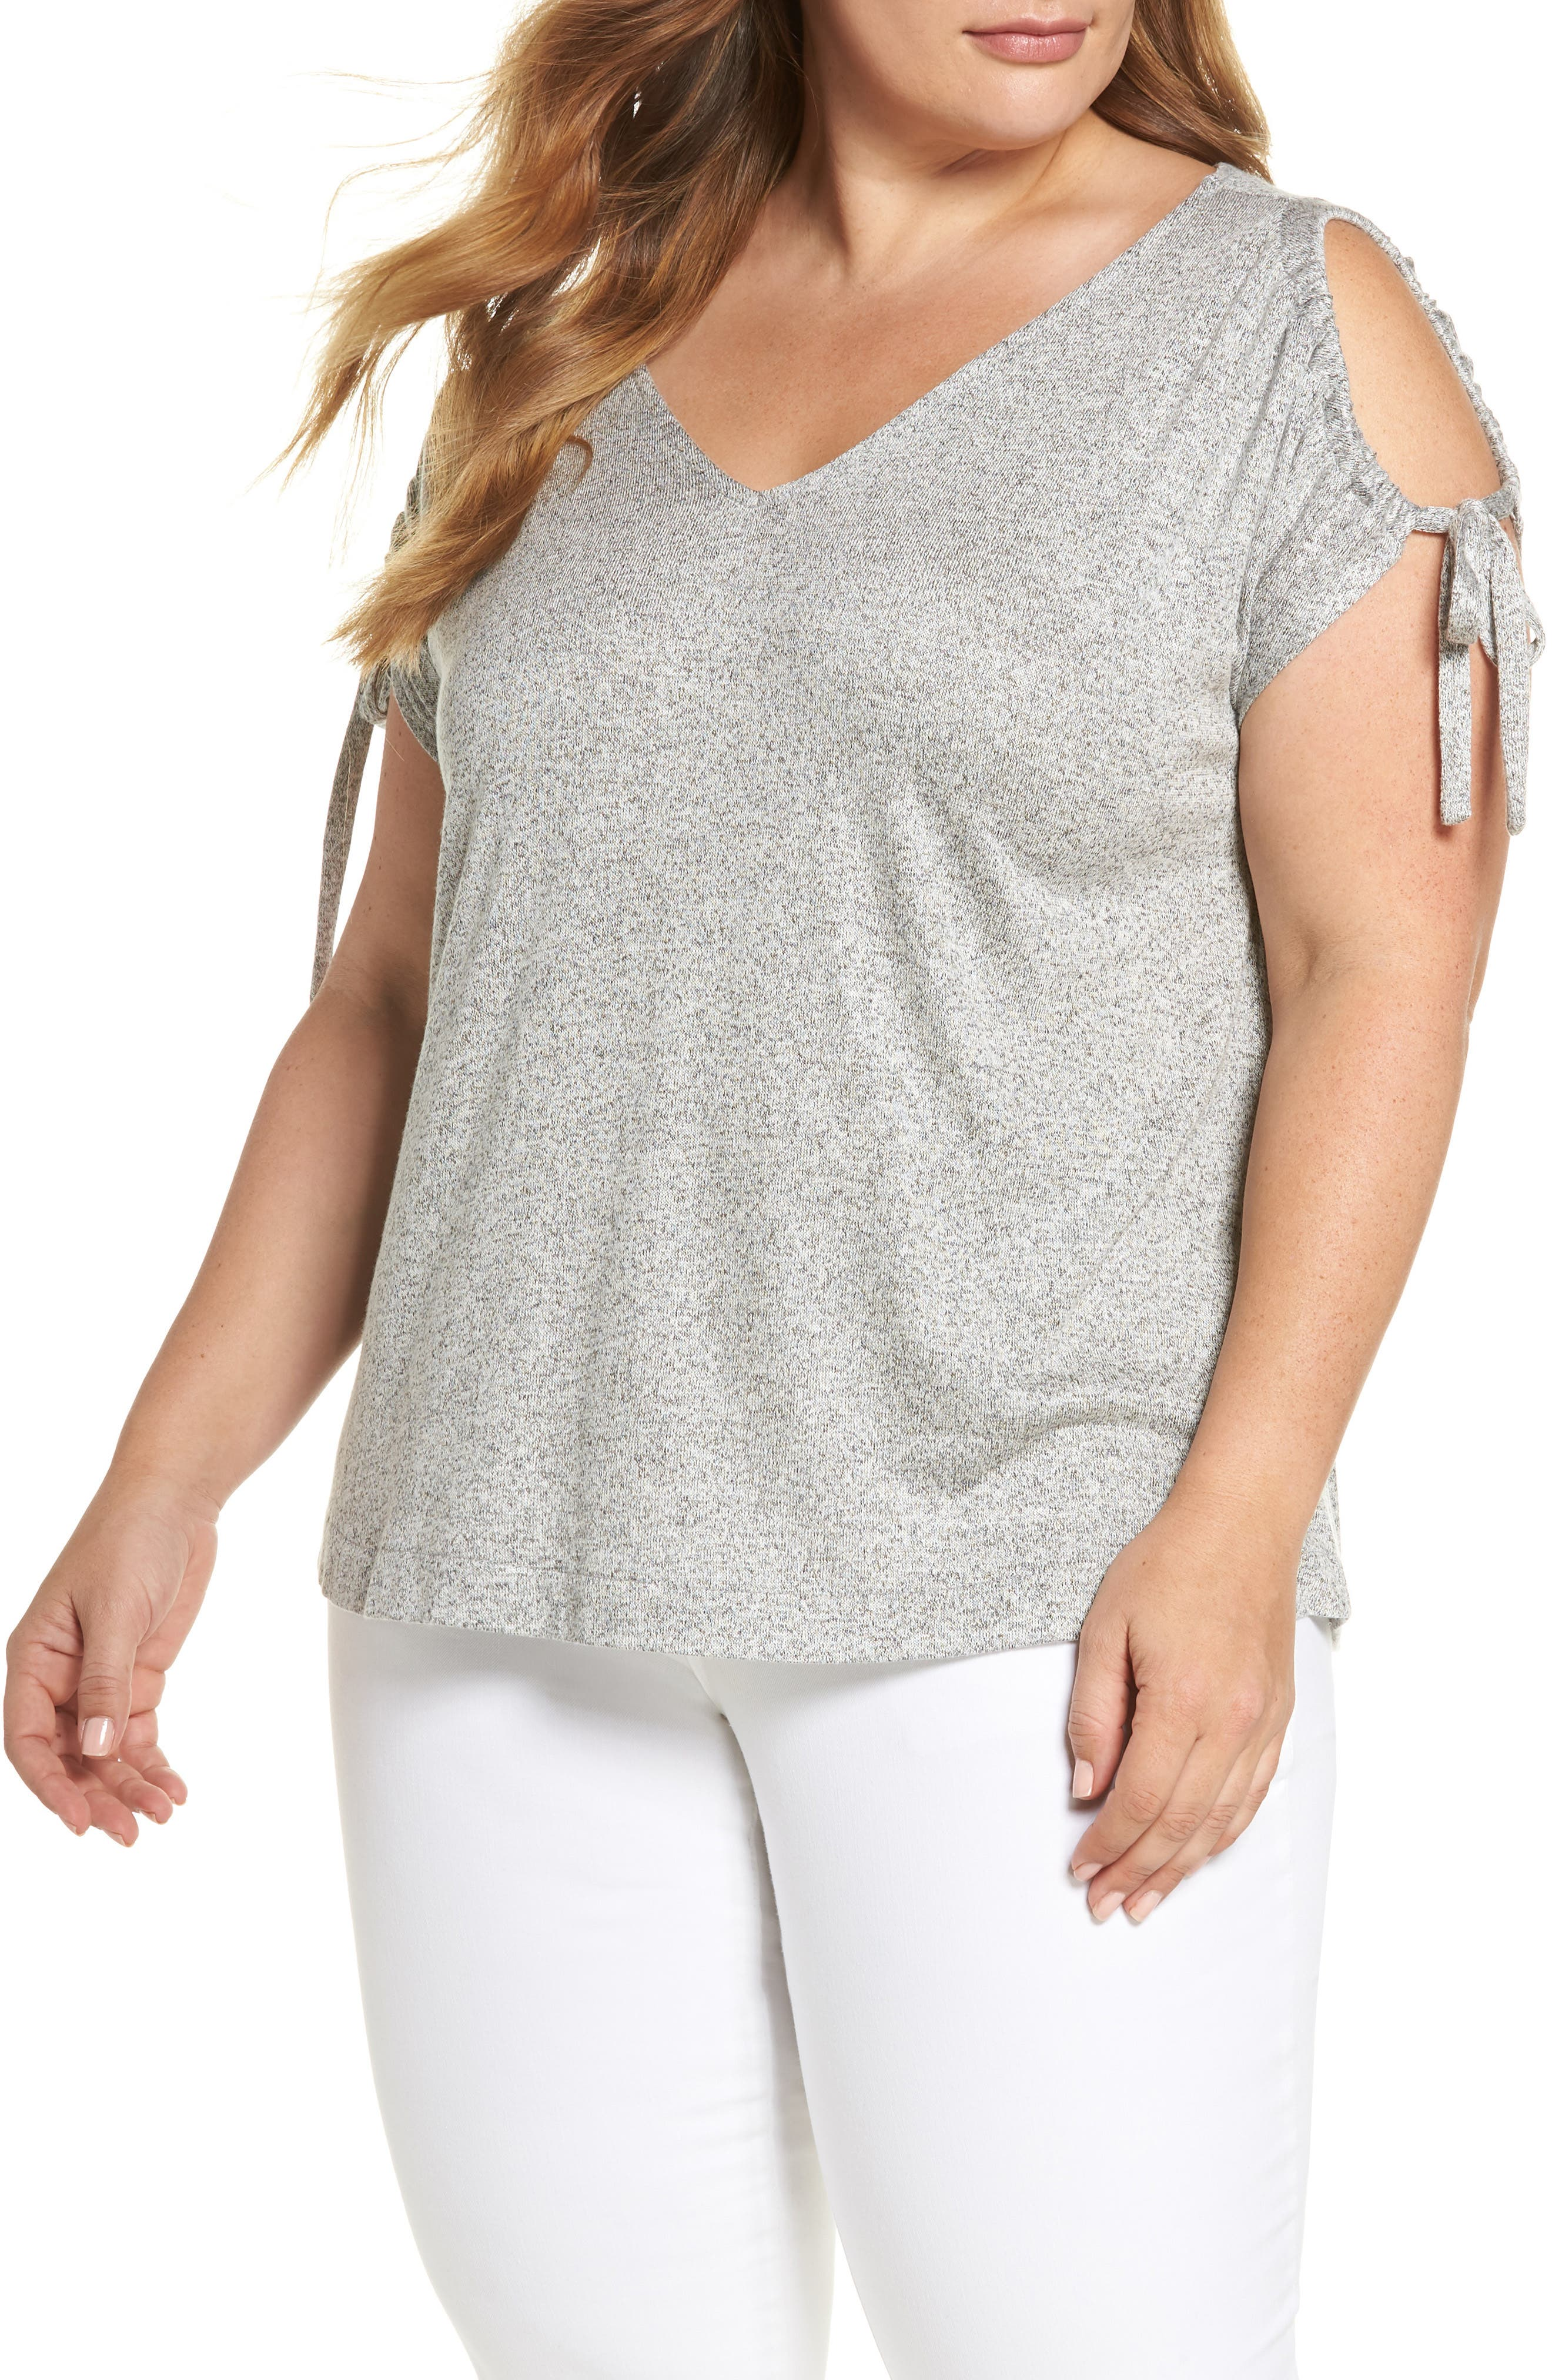 Main Image - Lucky Brand Tie Shoulder Top (Plus Size)